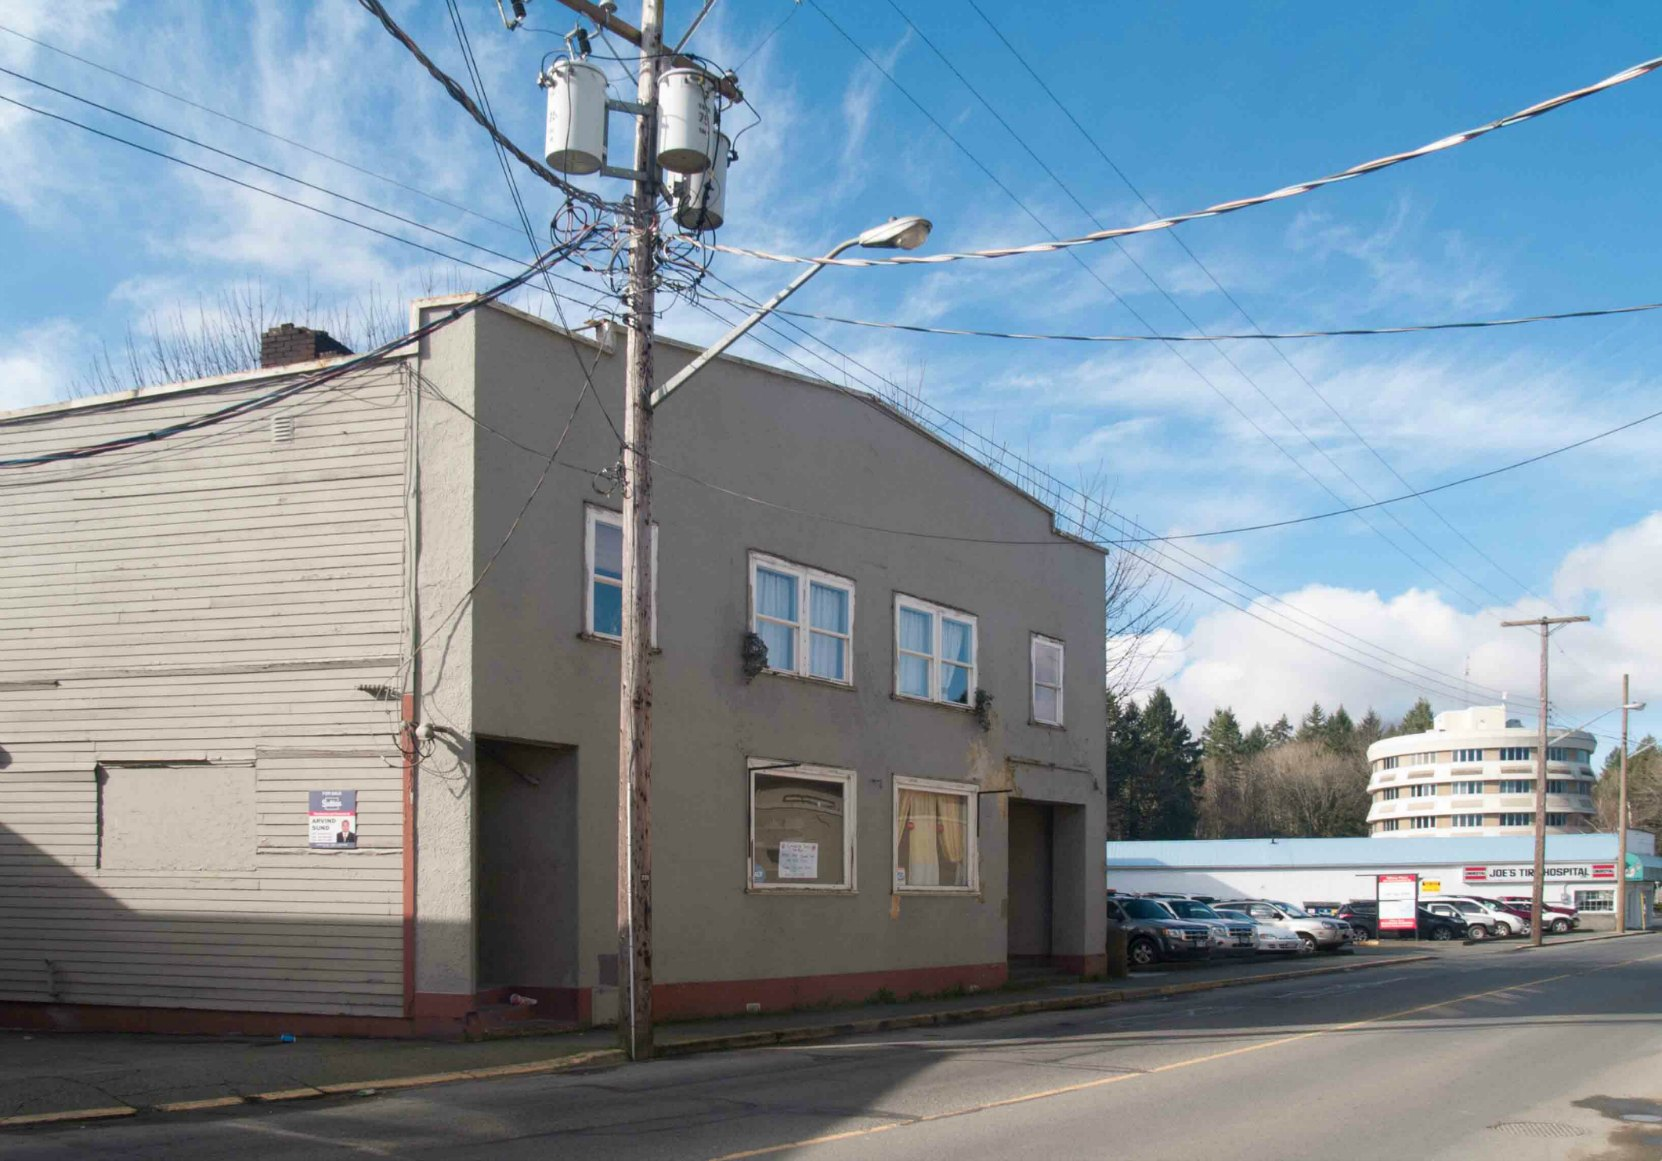 The former Canadian Legion building on Government Street, built in 1939 by architect Douglas James for the Canadian Legion, Cowichan Branch